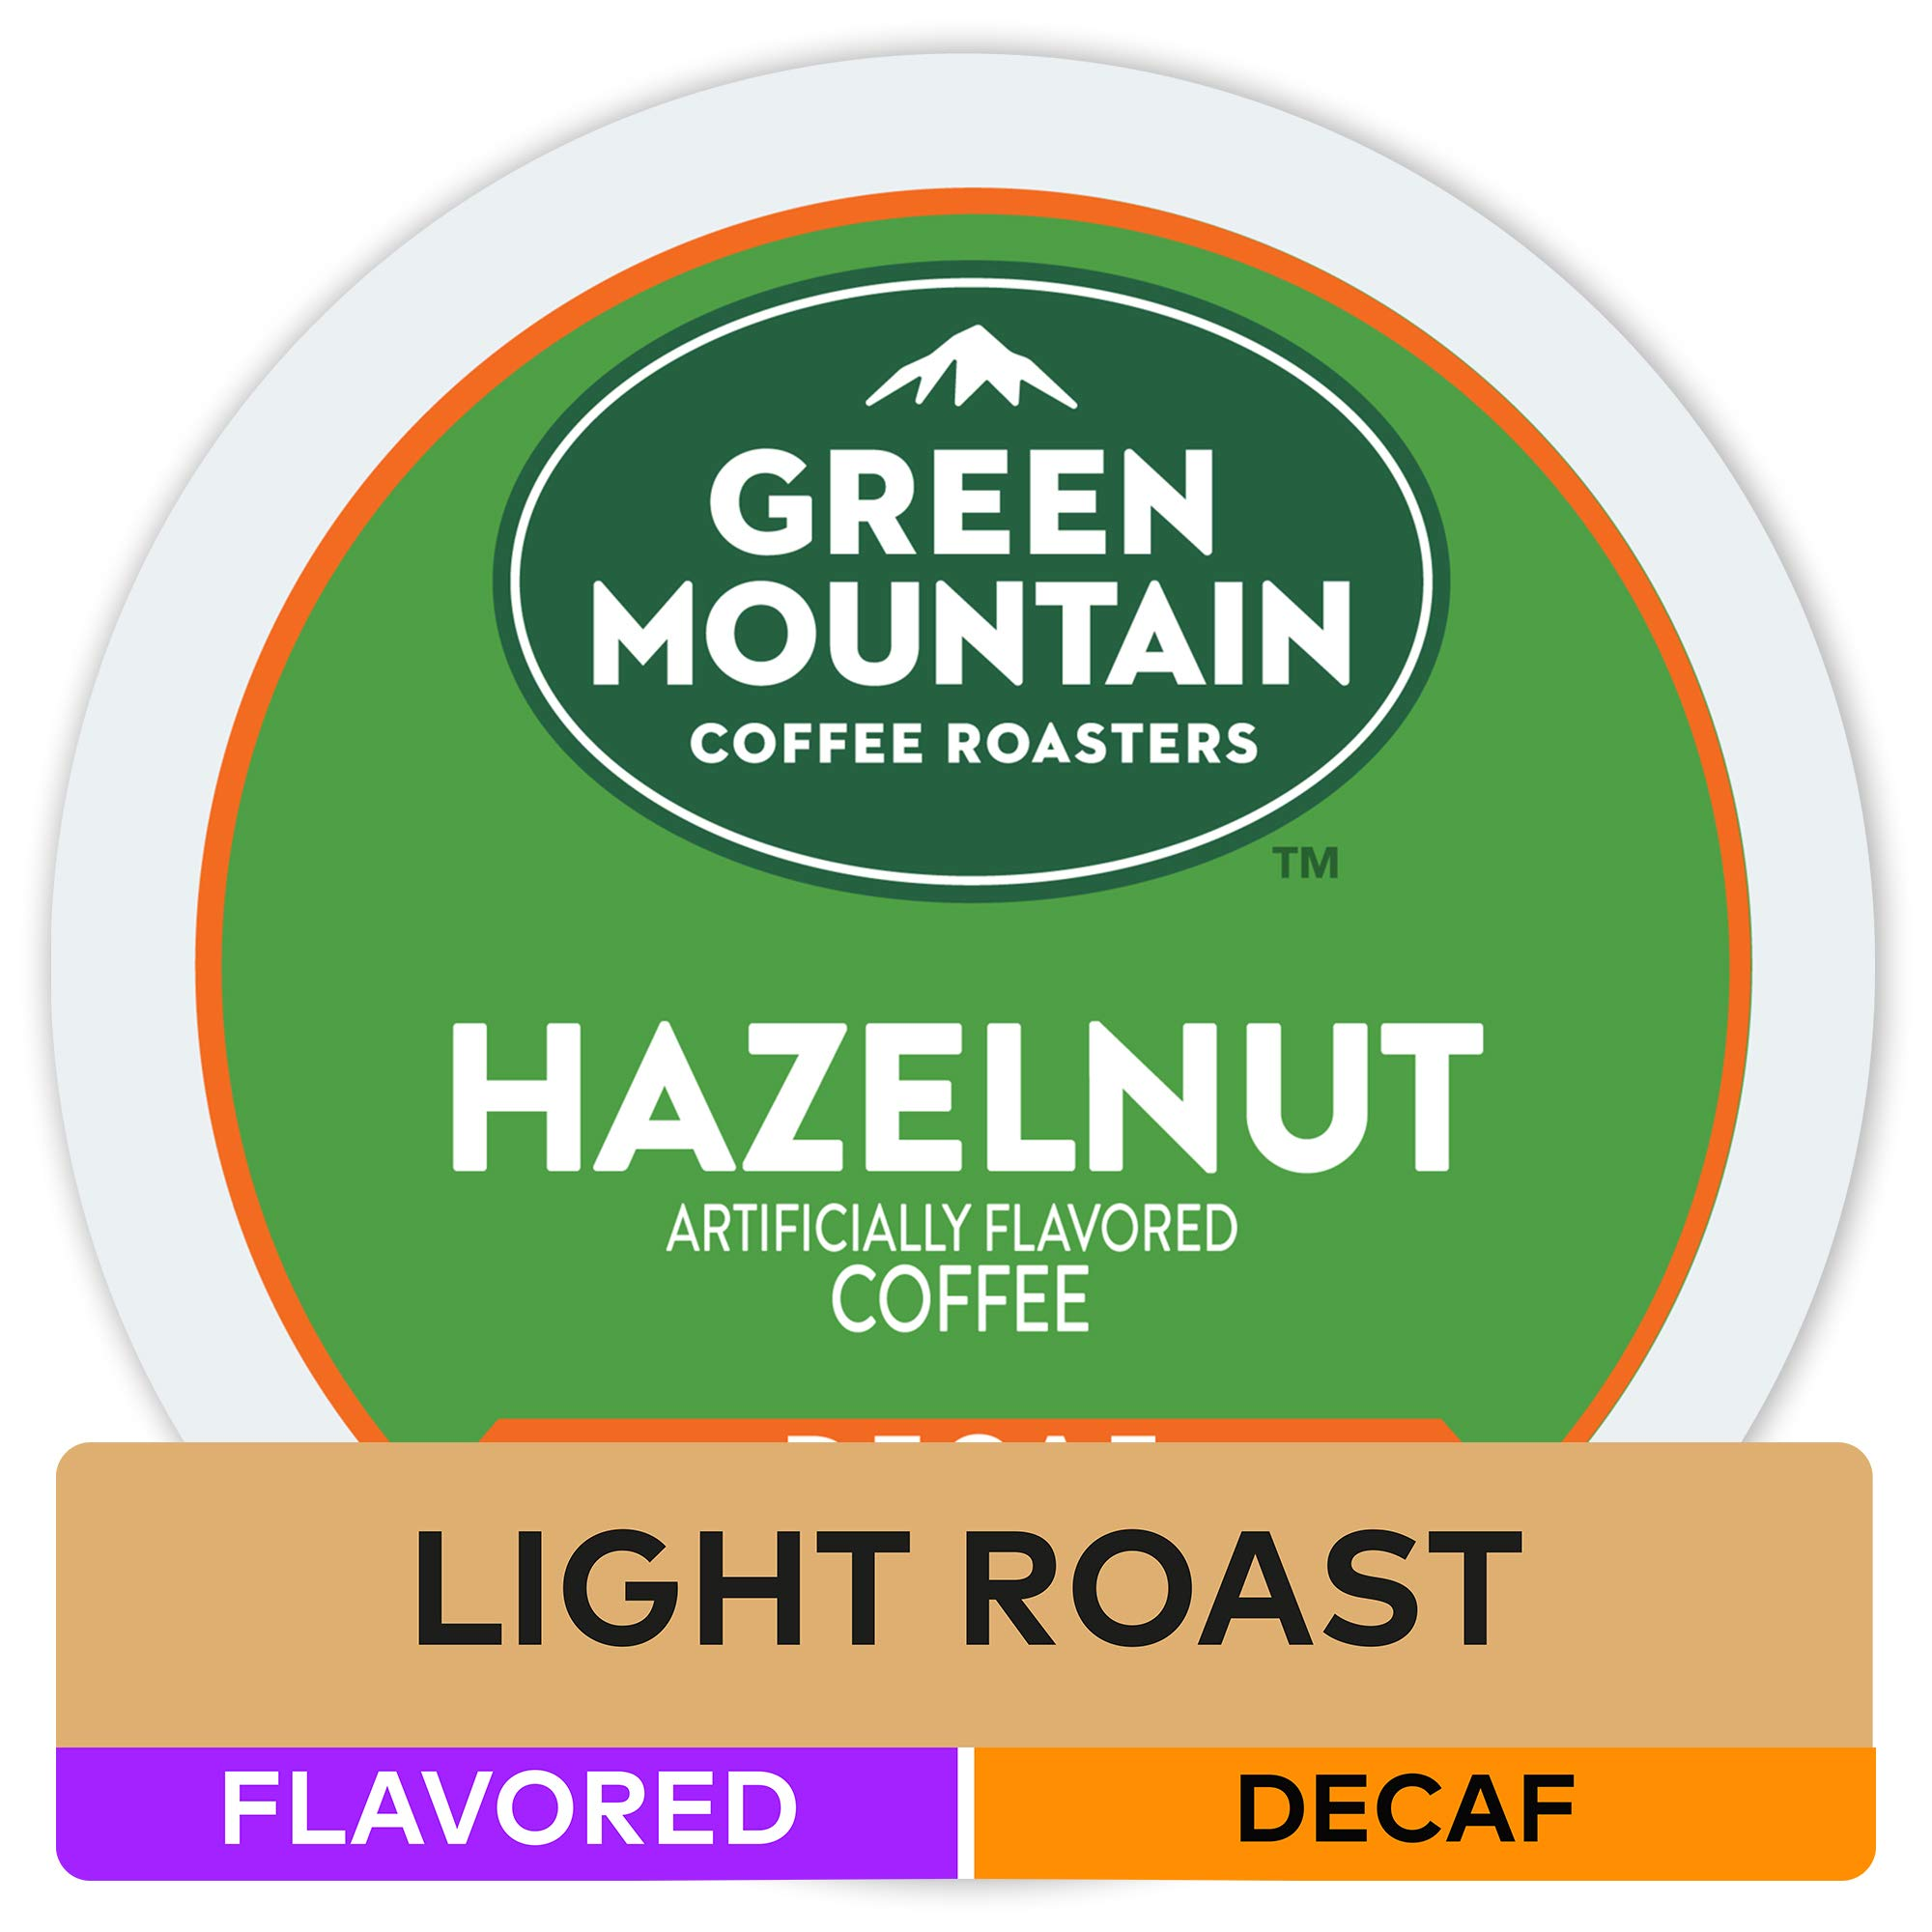 Green Mountain Coffee Roasters Hazelnut, Single Serve Coffee K-Cup Pod, Decaf, 12 Count (Pack of 6) (Packaging May Vary)